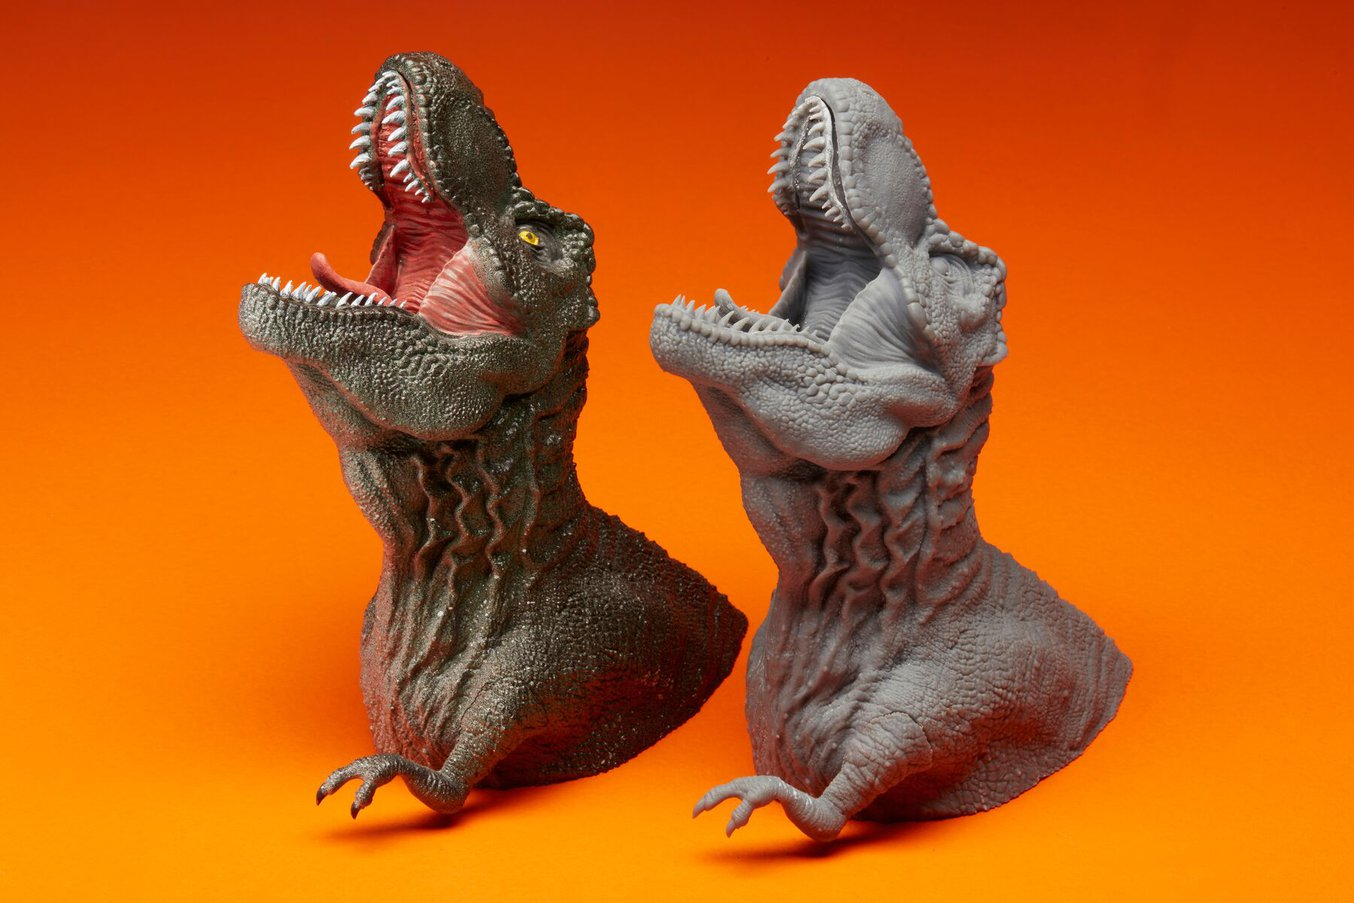 Side by side comparison on the before and after painting a 3D printed dinosaur miniature.